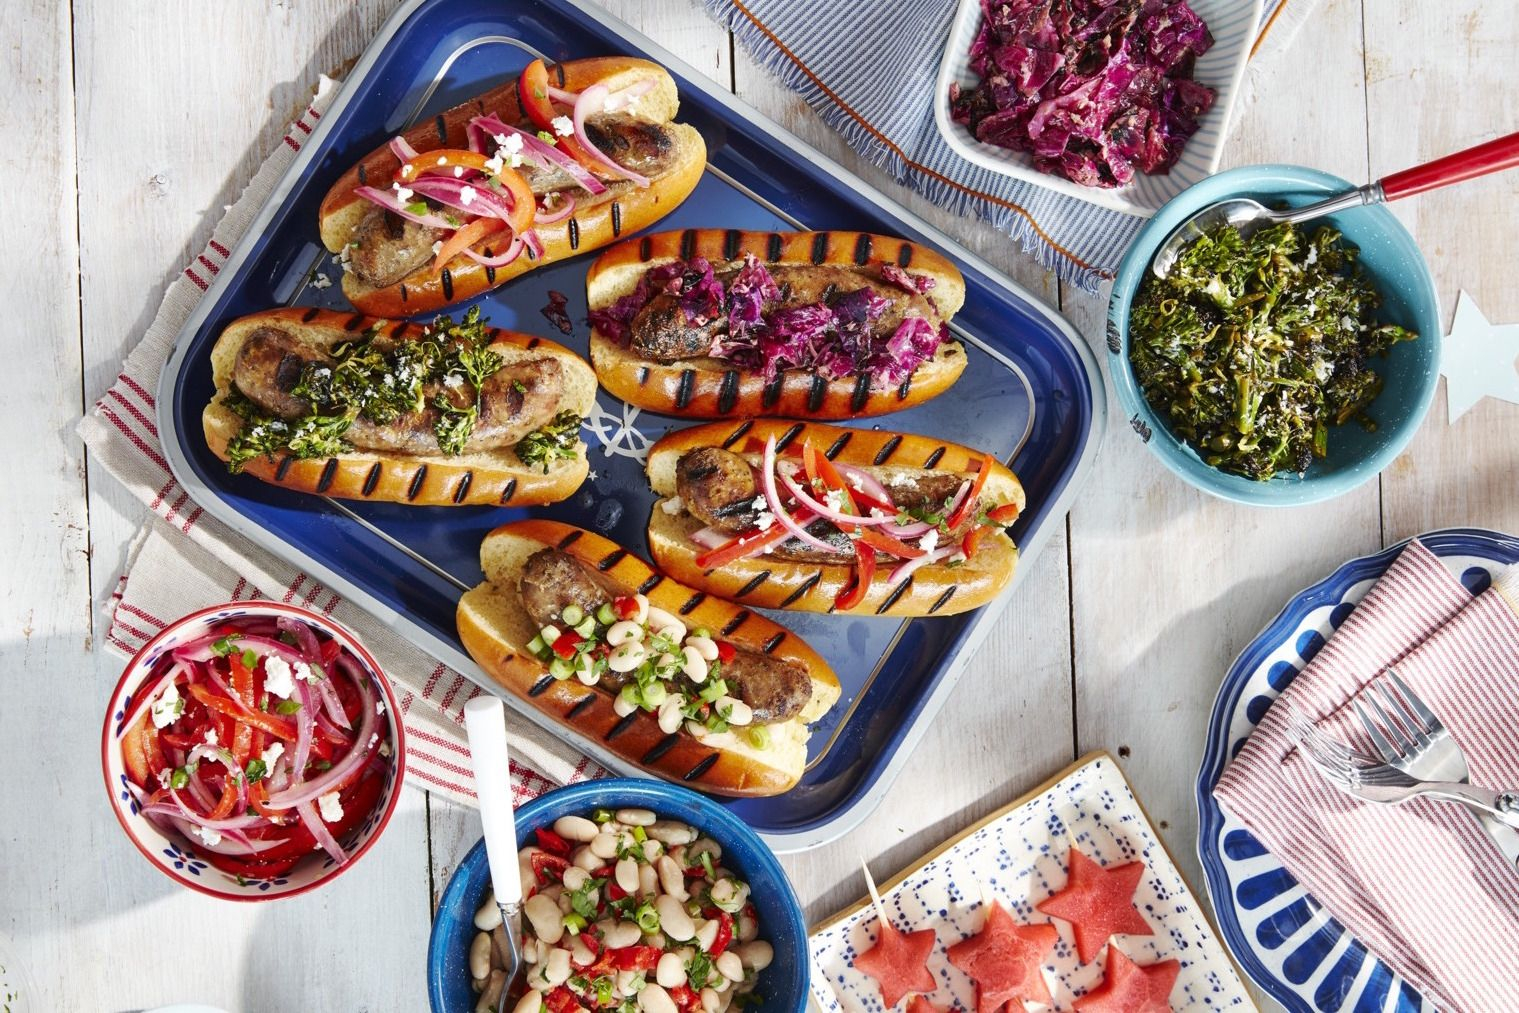 50 Best Backyard Bbq Party Ideas Summer Party Tips in 11 Genius Initiatives of How to Build Backyard Bbq Wedding Ideas On A Budget